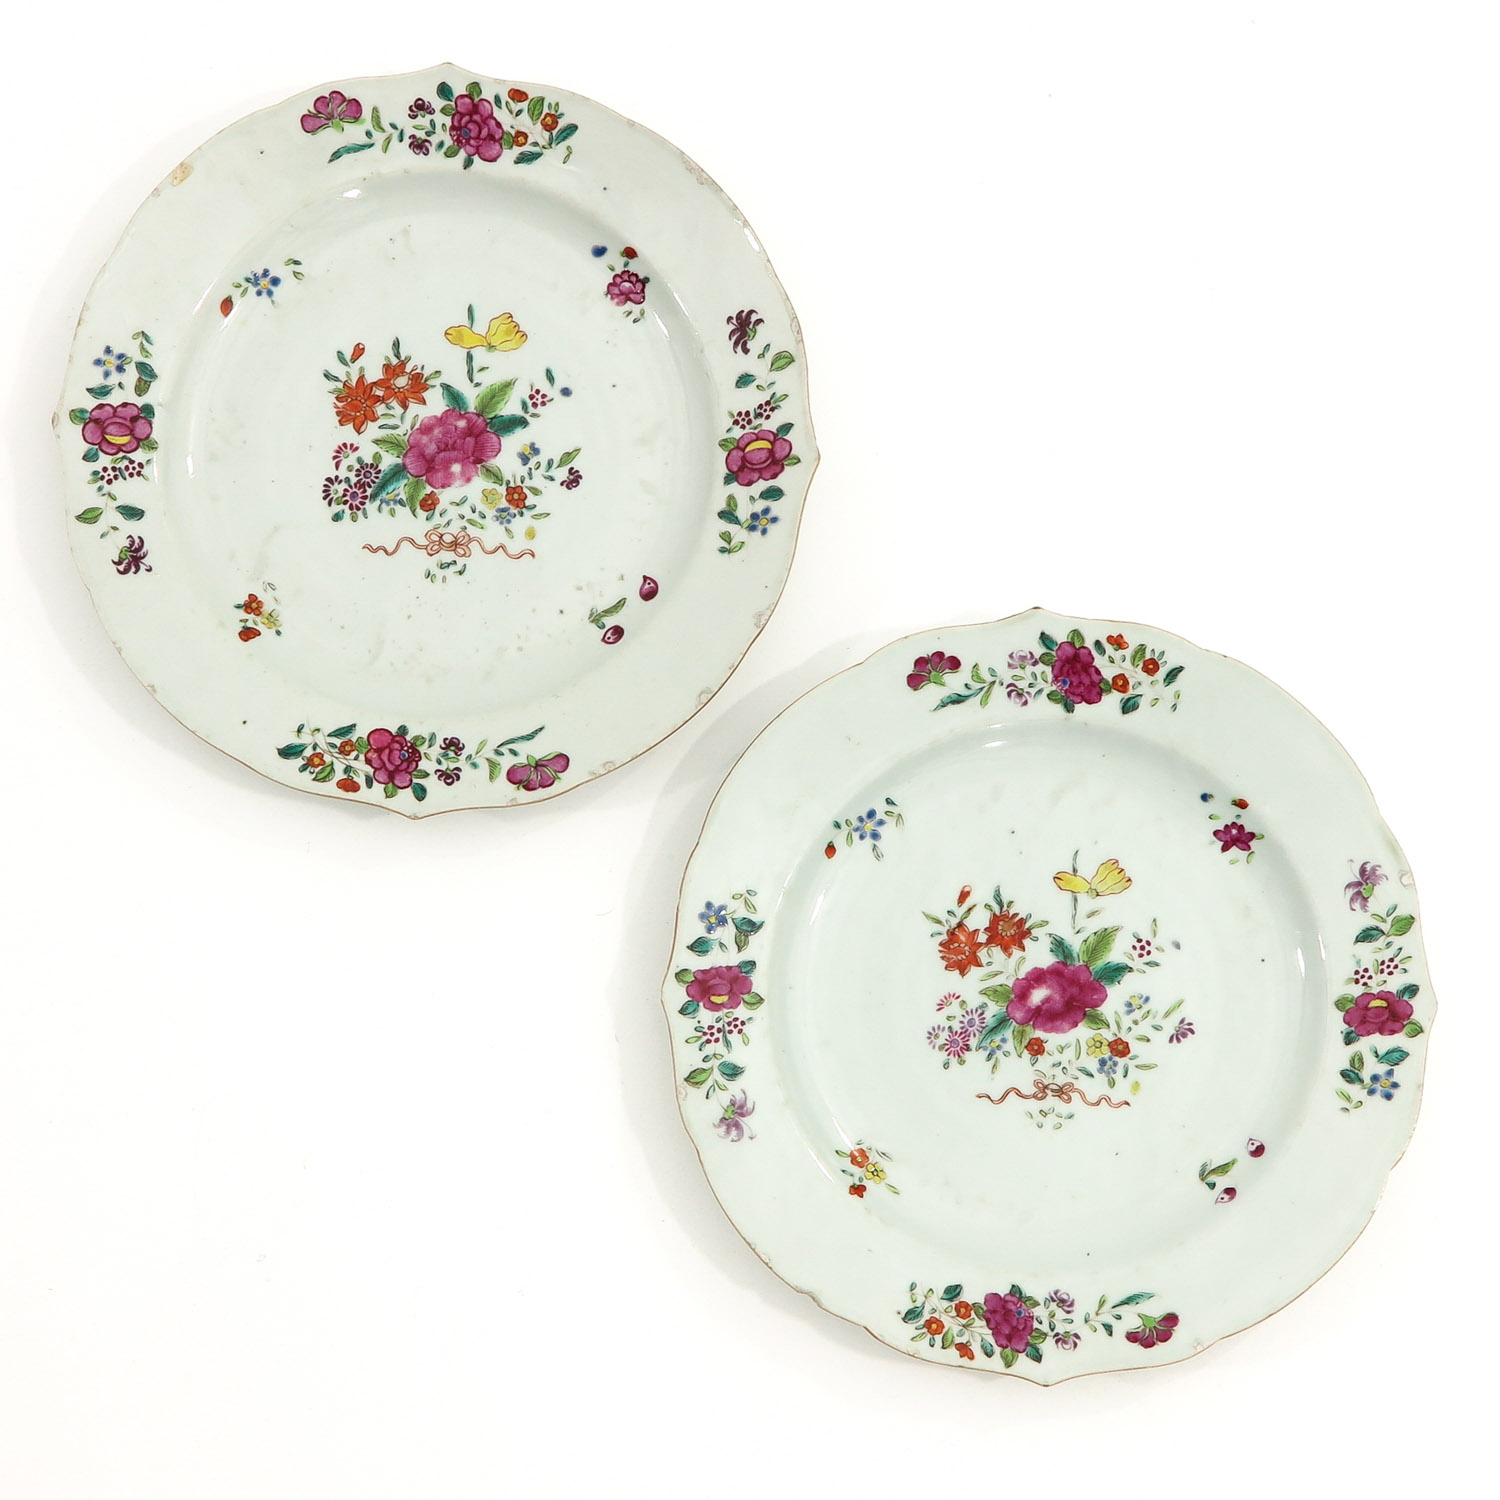 A Series of Famille Rose Plates - Image 7 of 10